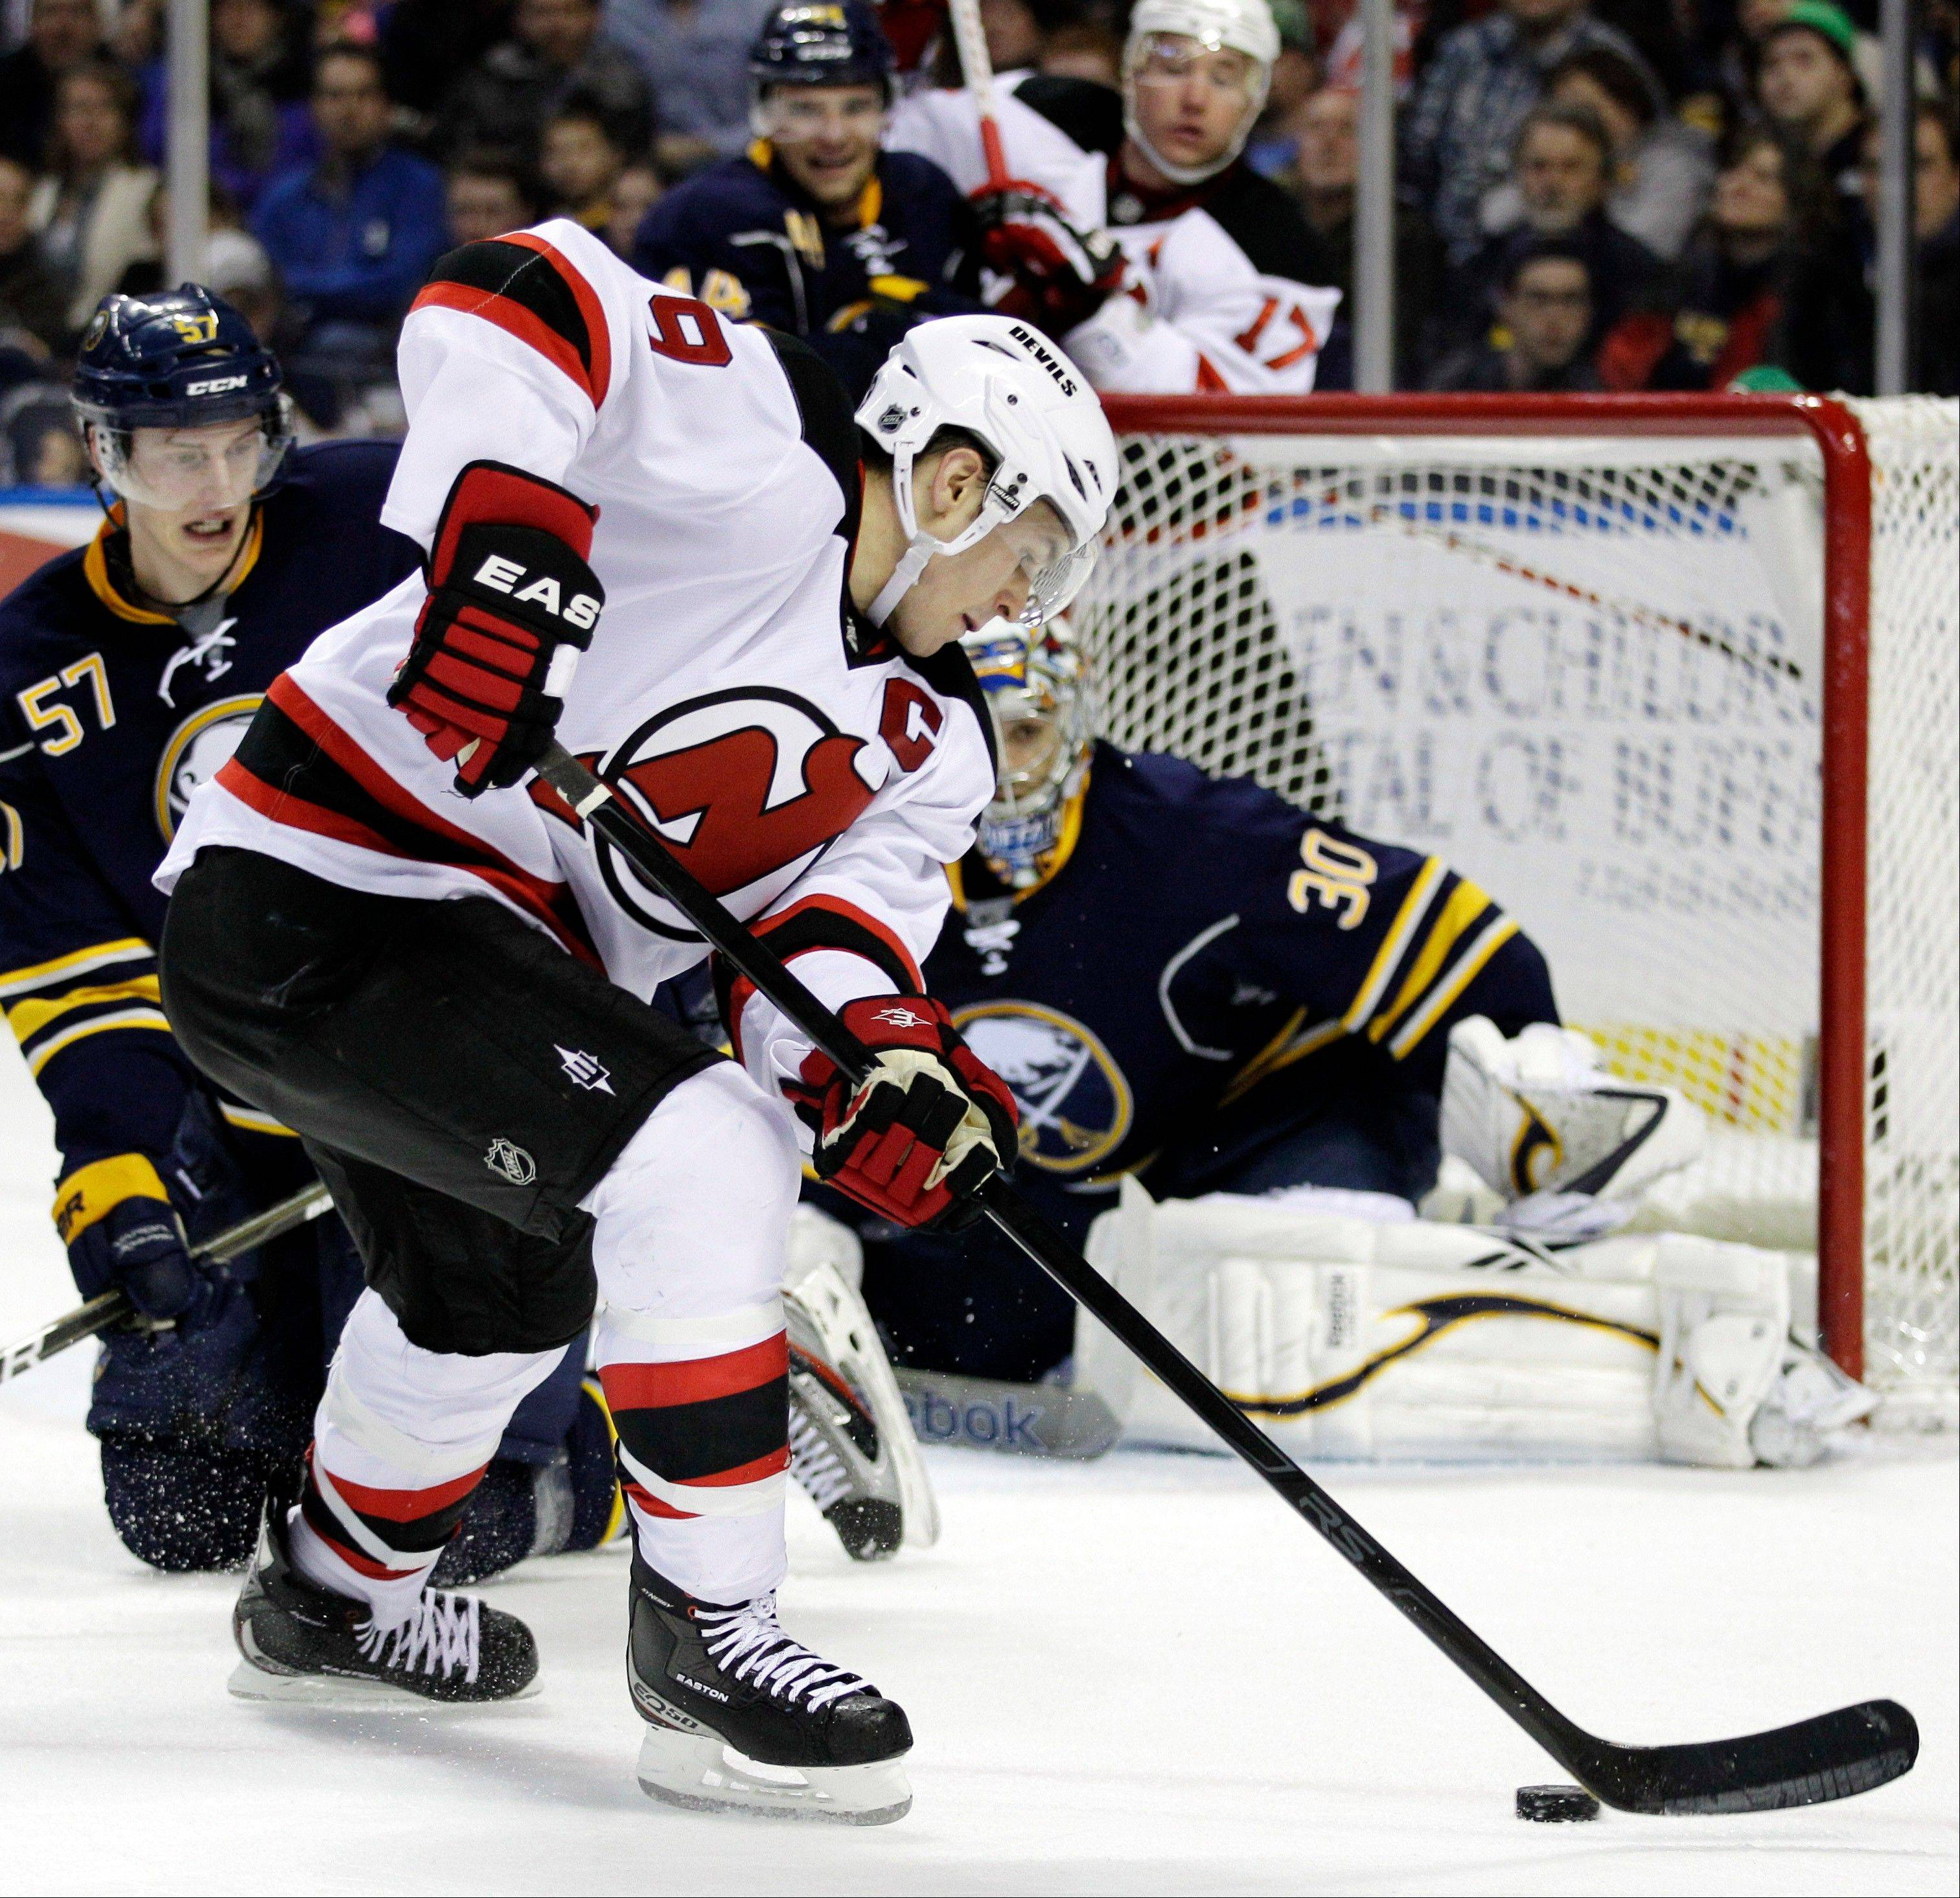 New Jersey Devils captain Zach Parise (9) says he needs more time to decide where he�ll play next. It is believed the Blackhawks, along with Pittsburgh, Detroit, New Jersey, Minnesota and Philadelphia, are on Parise�s list of possible teams.